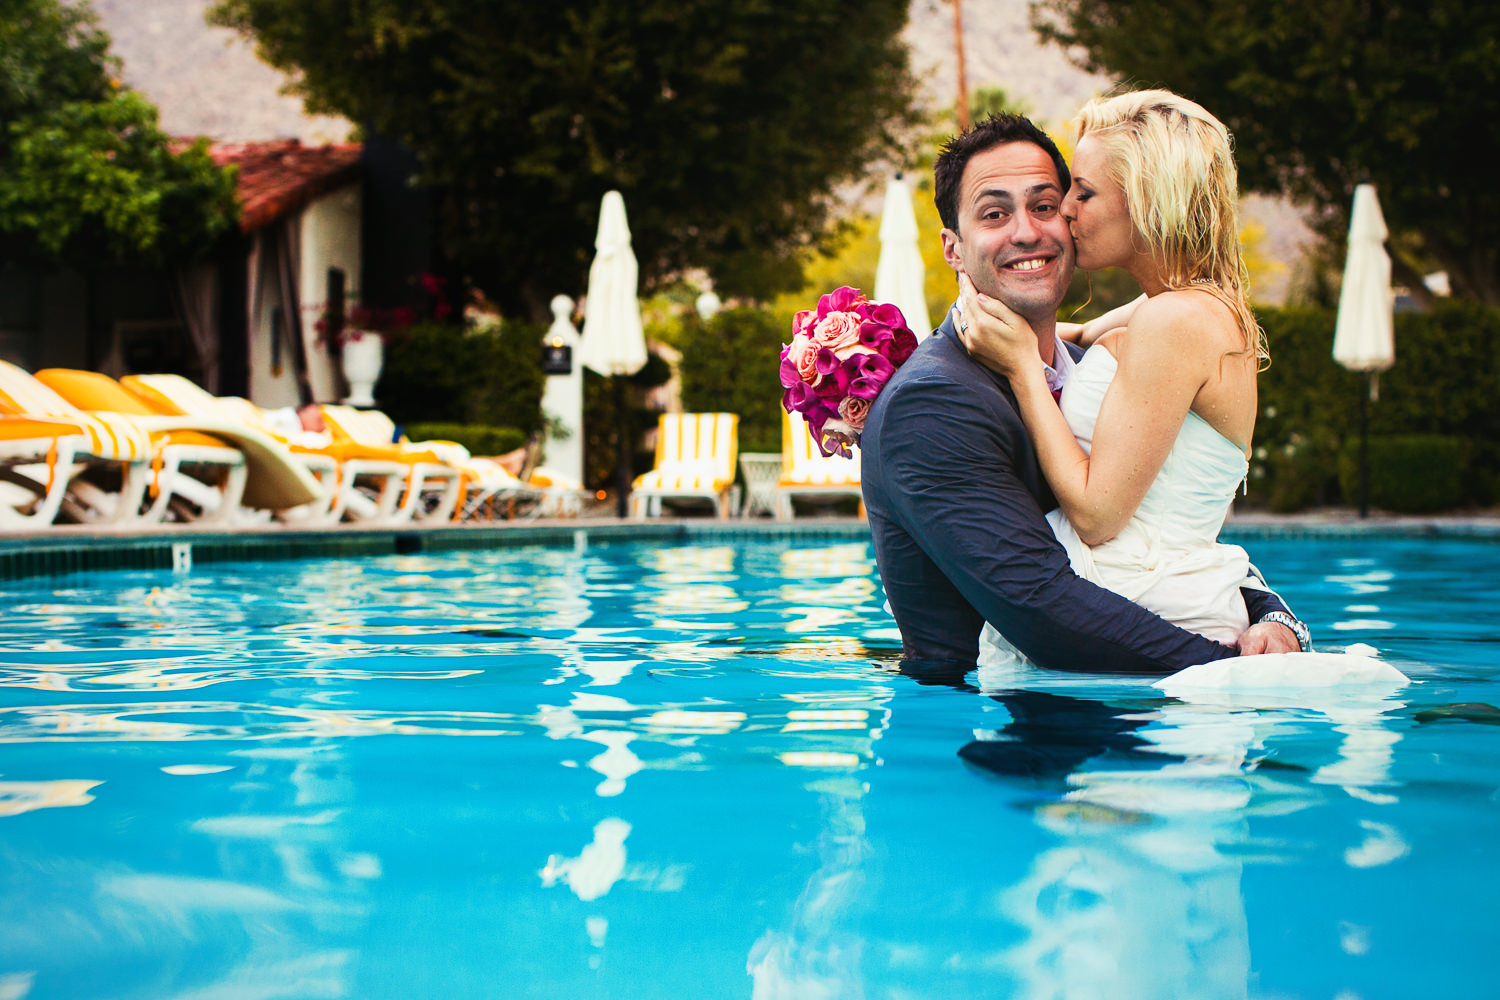 Avalon Palm Springs Photographer - Joy and love in the pool